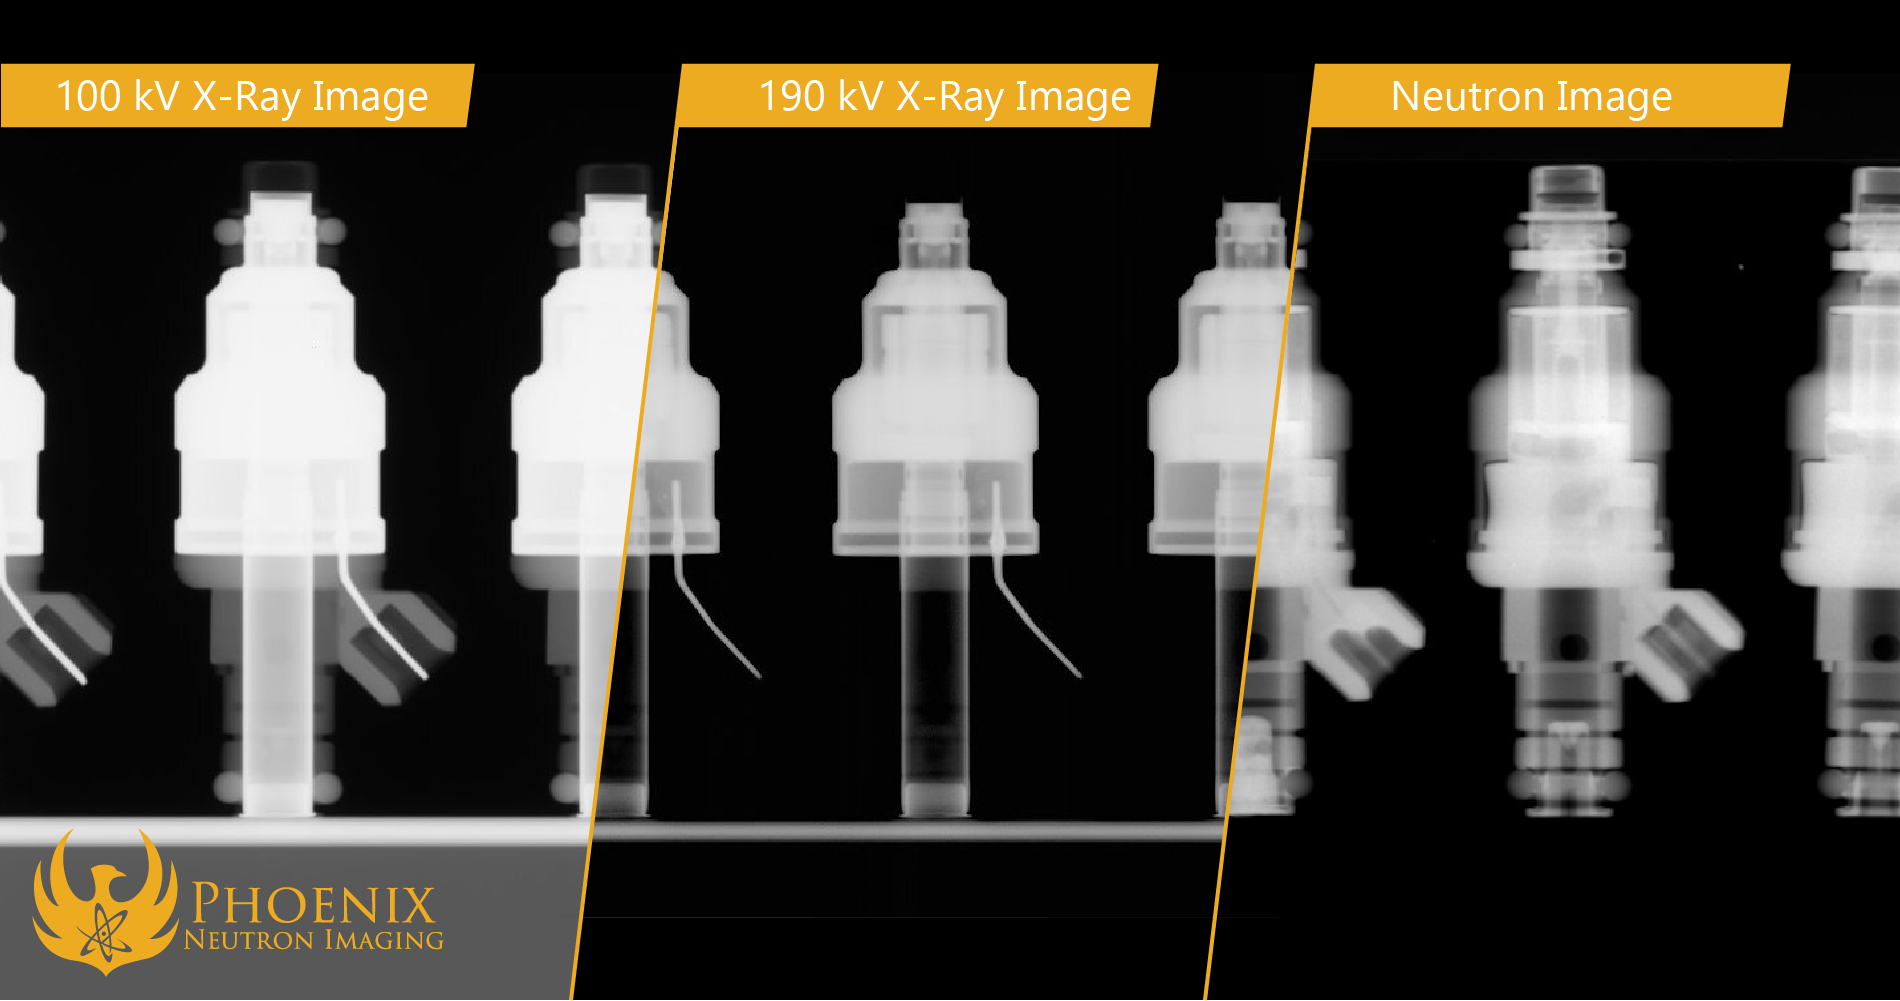 A comparison of a 100kV X-Ray, 190 kV X-ray, and neutron Image of Fuel Injectors.